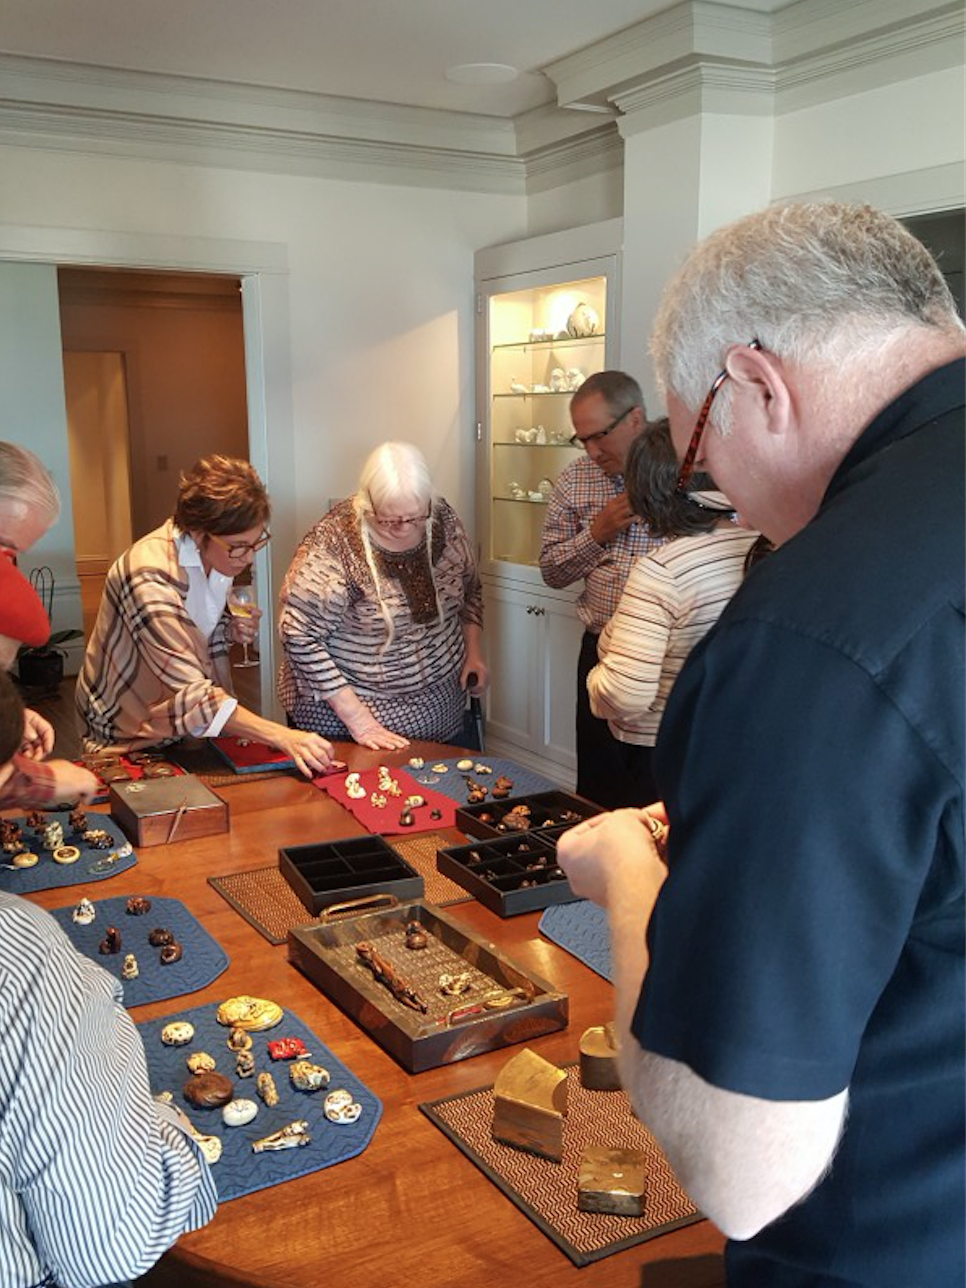 Screen Shot 2017-10-29 at 18.37.03.png